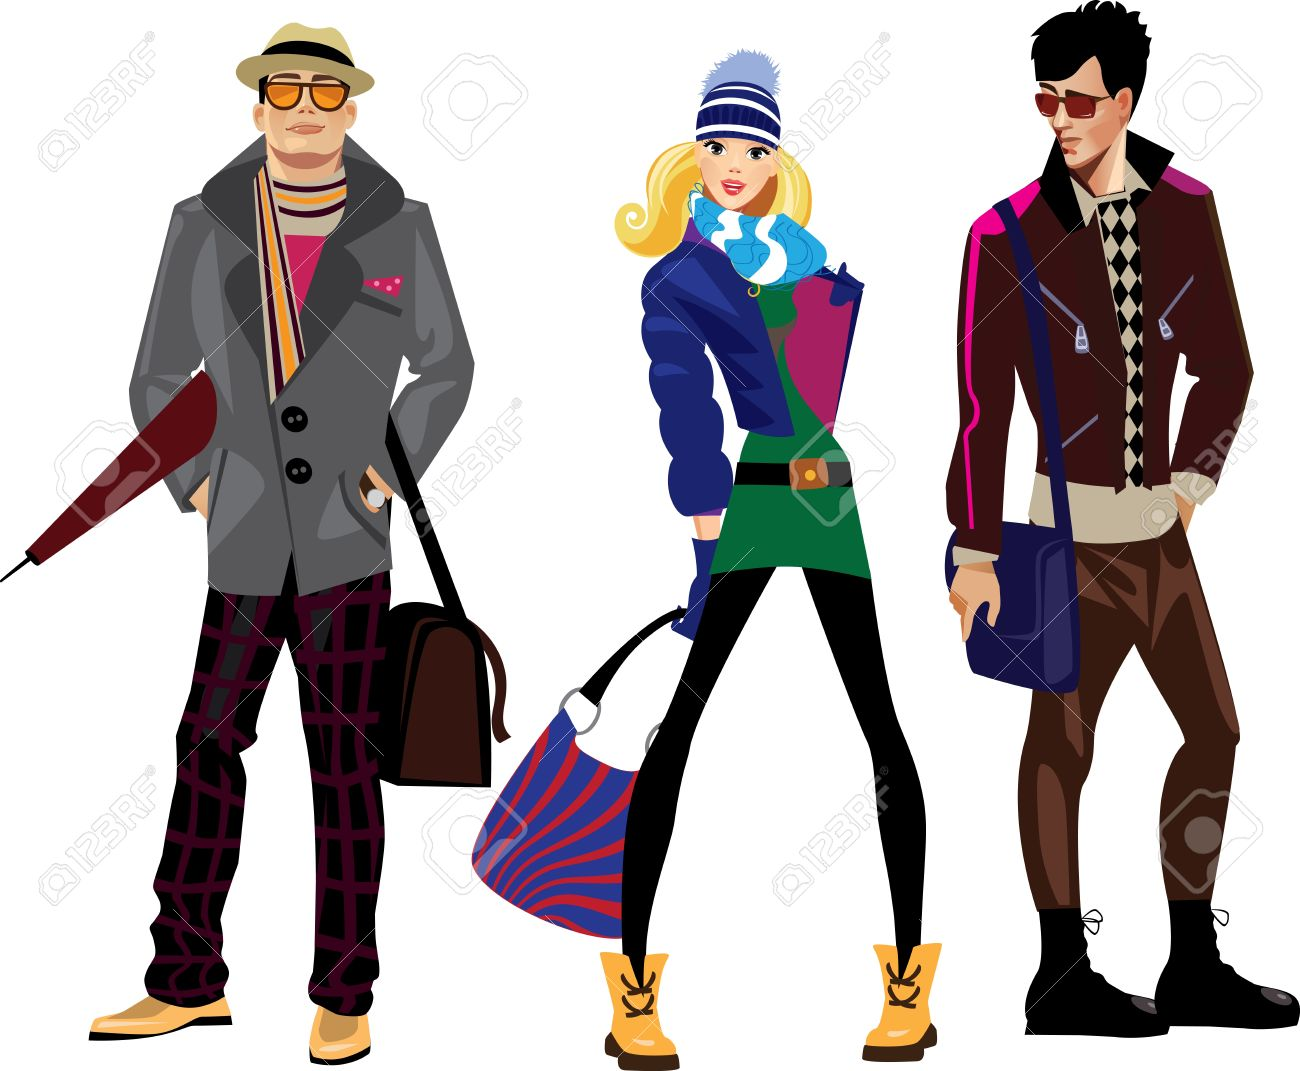 Guy clipart fashionable. Fashion cliparts free download